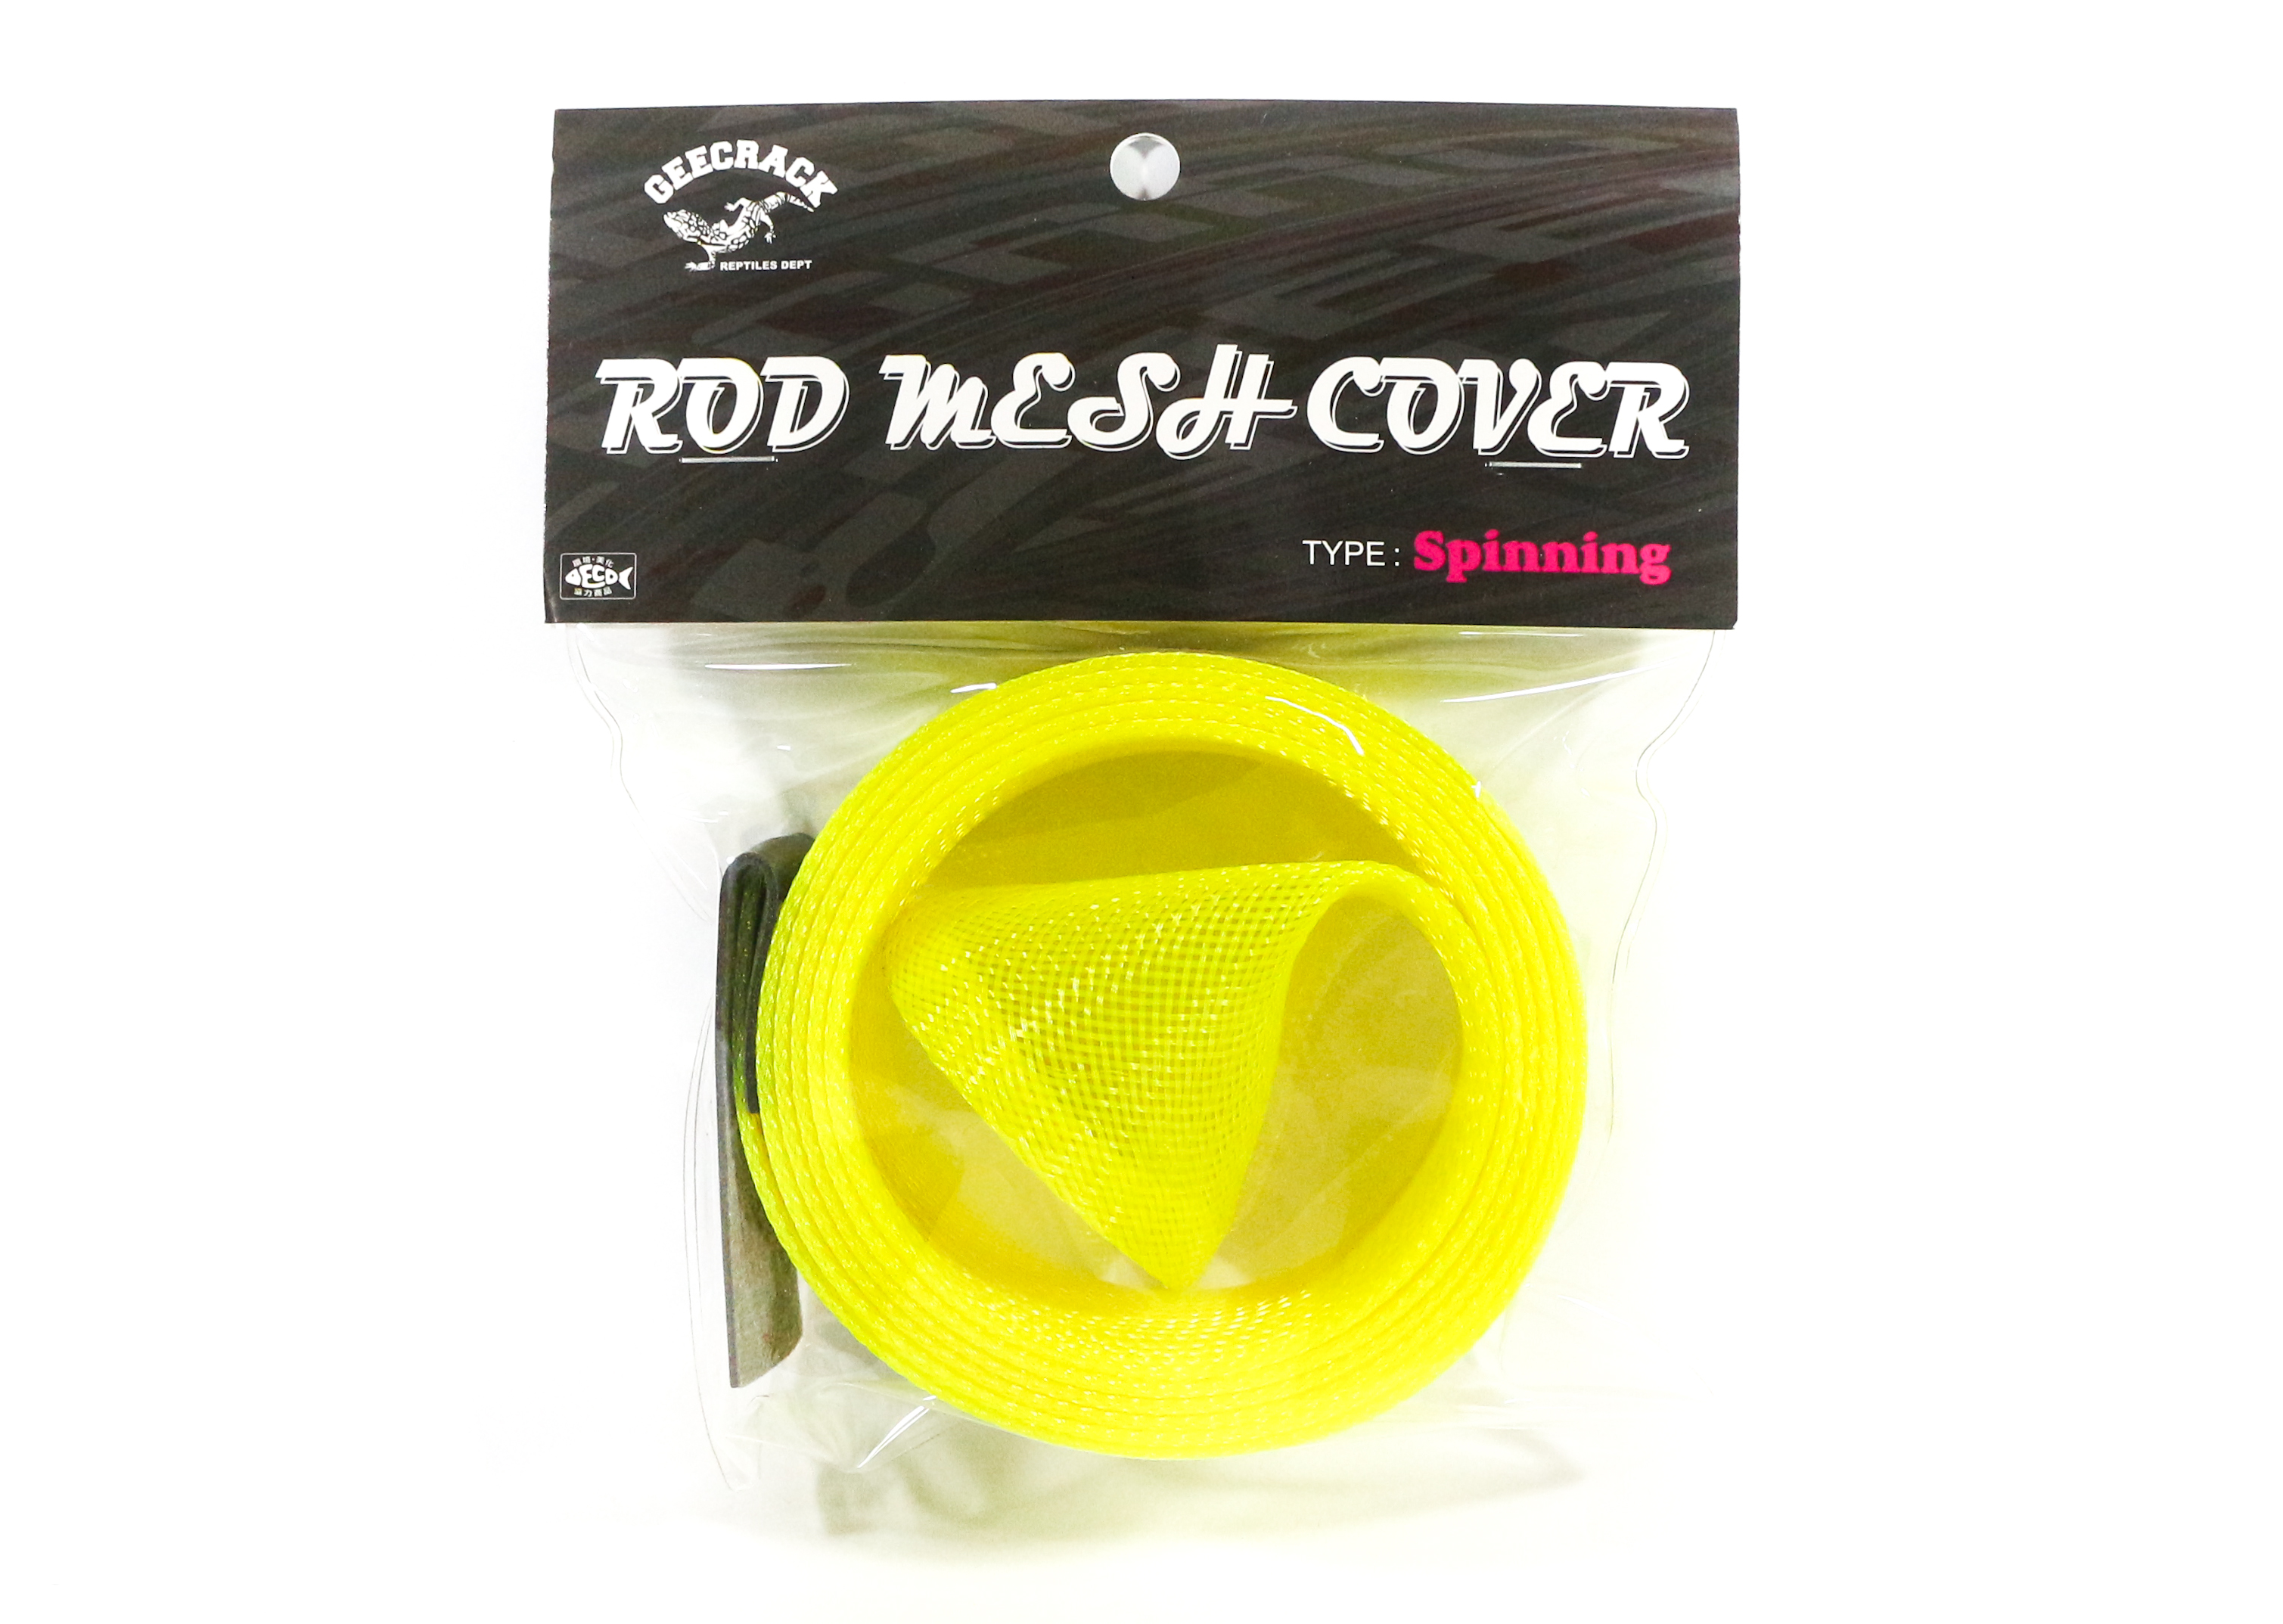 Sale Gee Crack GEE 717 Rod Mesh Cover Spinning 170 x 4 cm Yellow (1523)